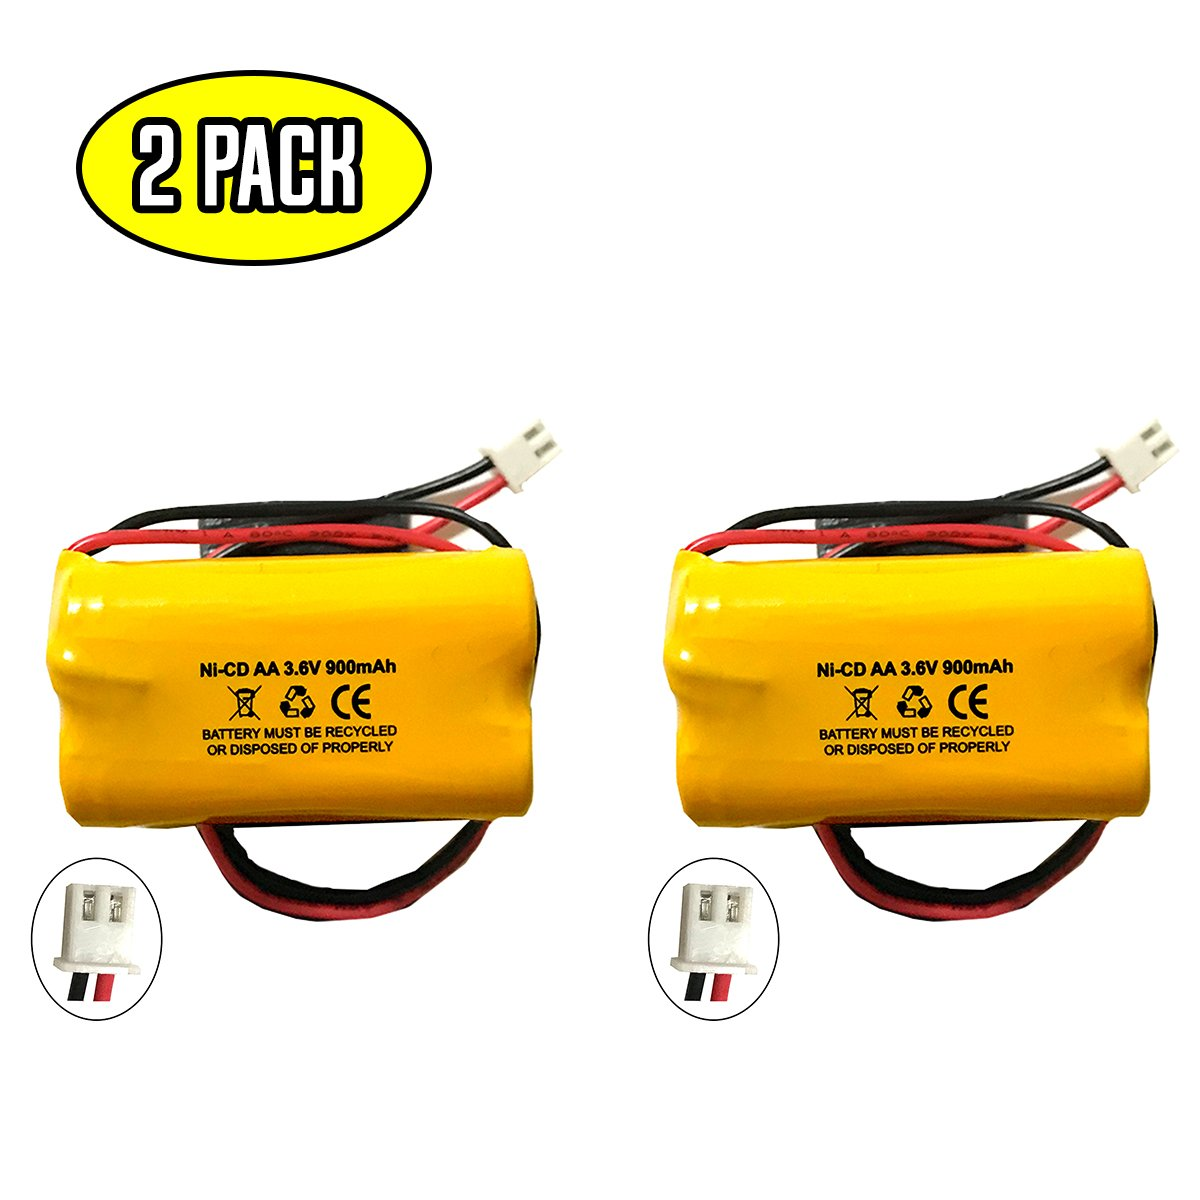 Unitech AA900MAH 6200 RP 36v 900mAh Battery Replacement Exit Sign Emergency Light NiCad 6200RP Lowes OSA230 253799 LEDR 1